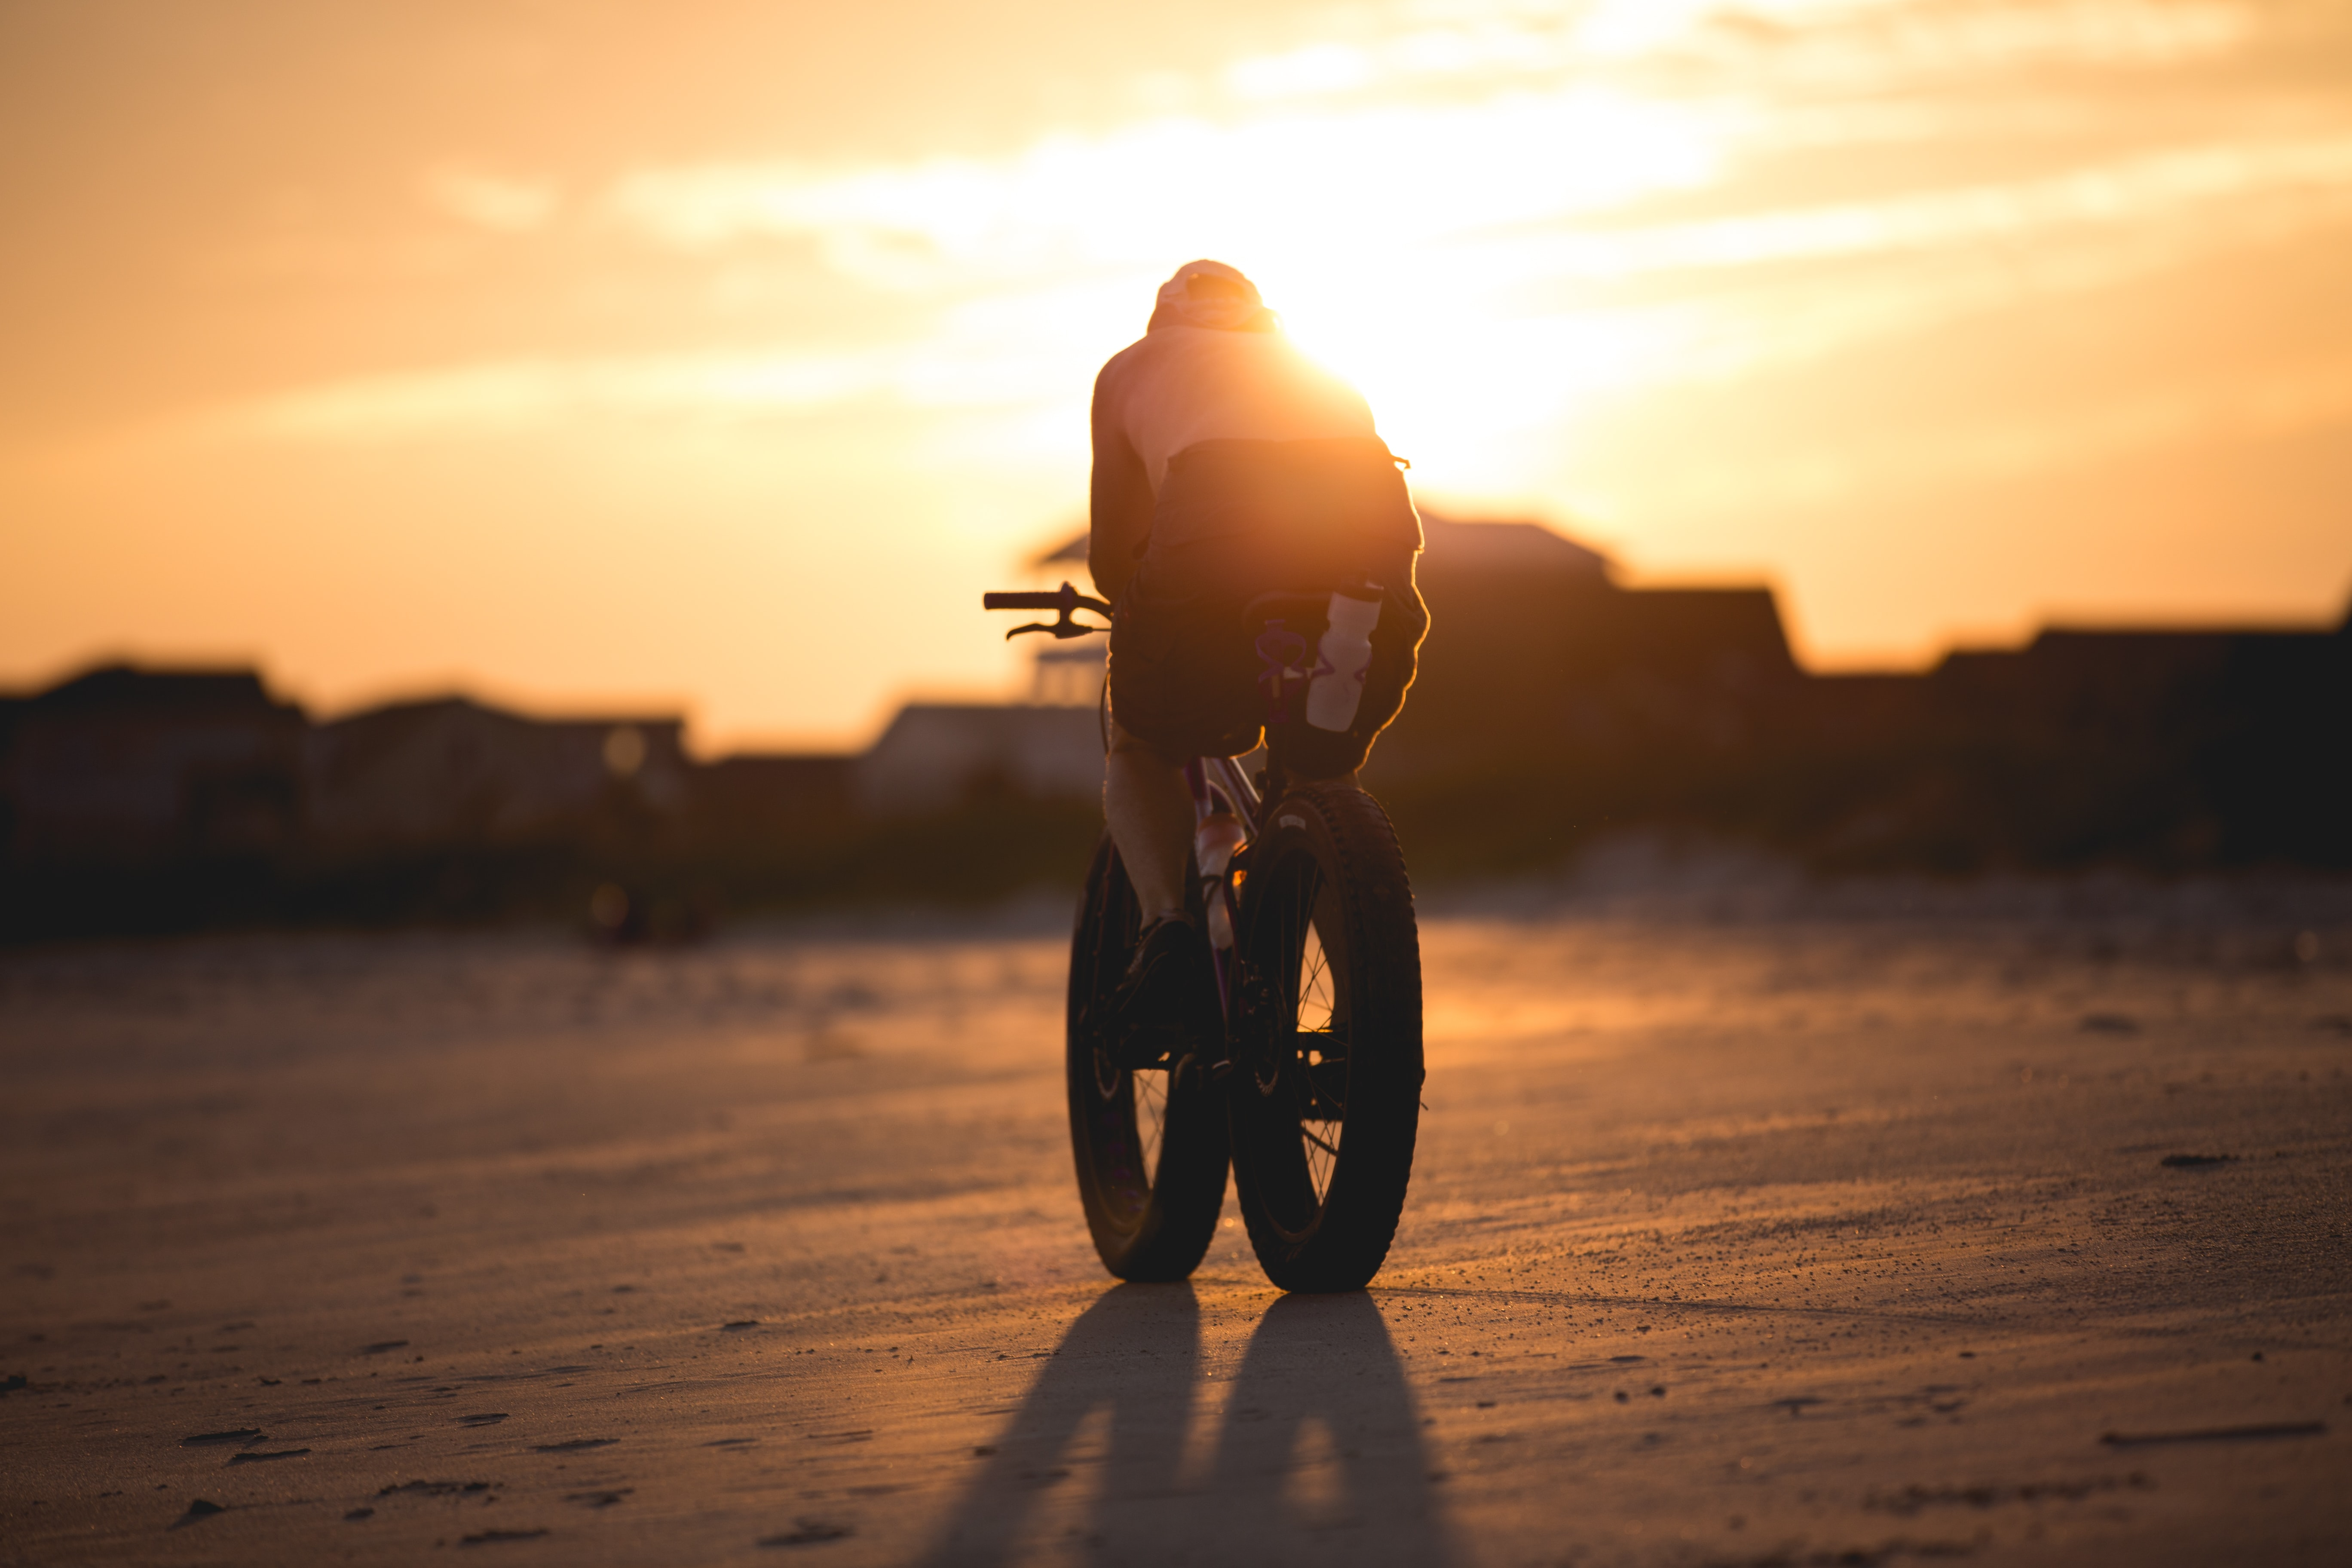 A shirtless man riding a bike with large tires, with the sunset in the background.